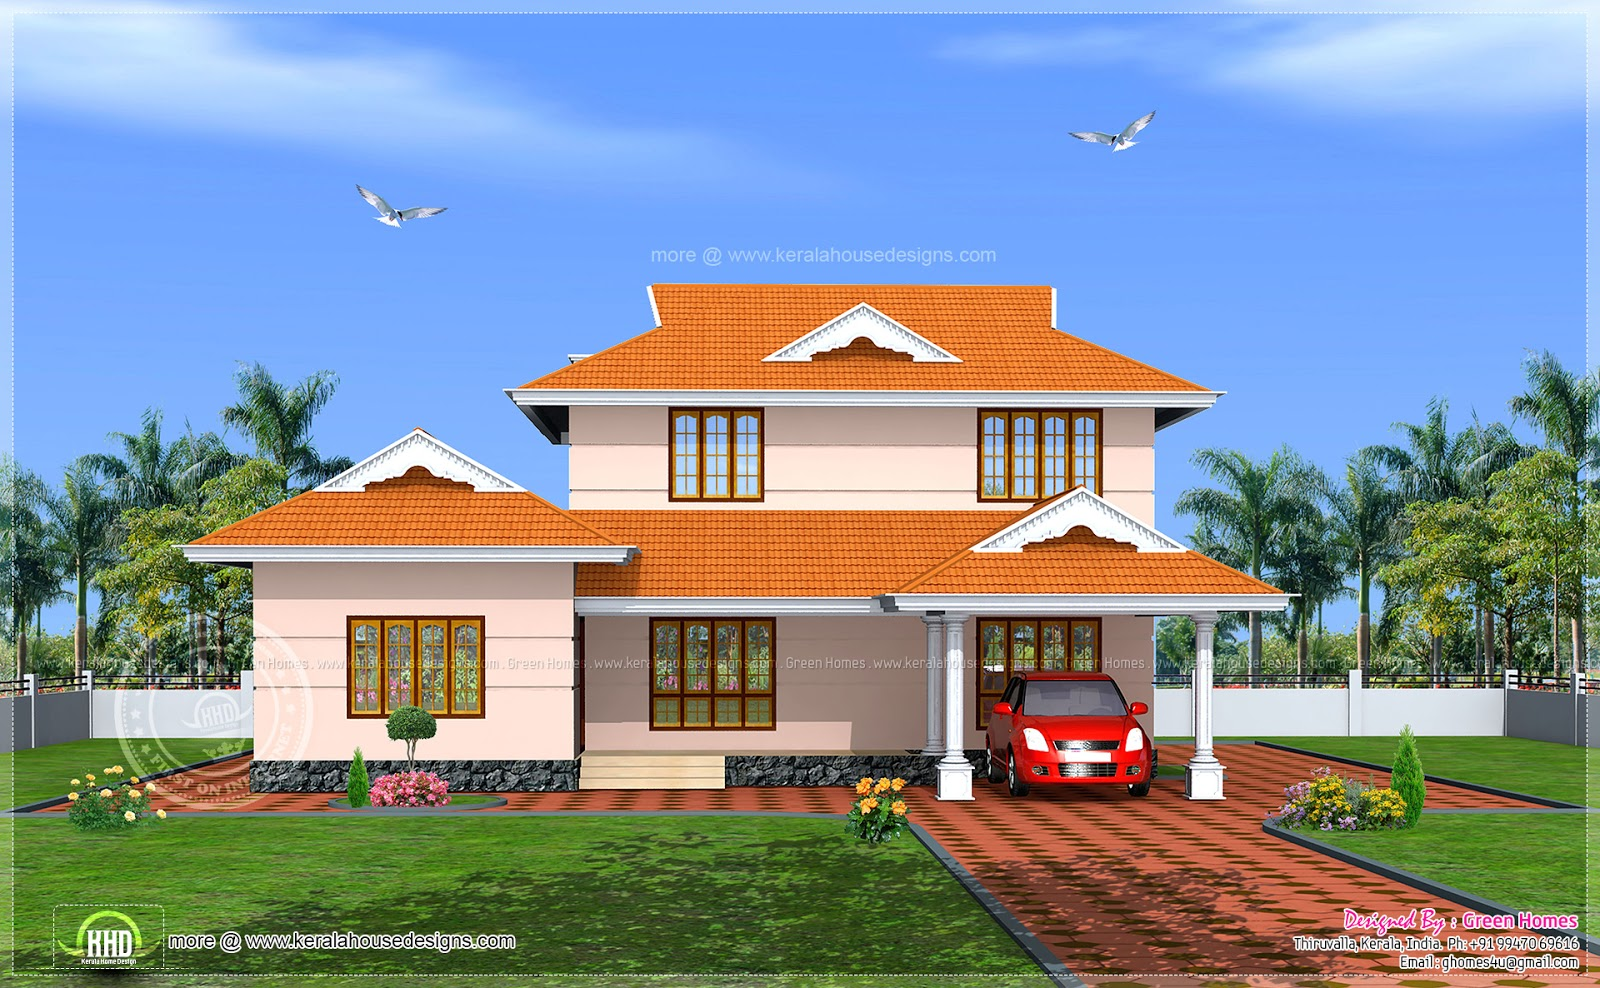 House plans and design house plans in kerala model with for House plans kerala model photos